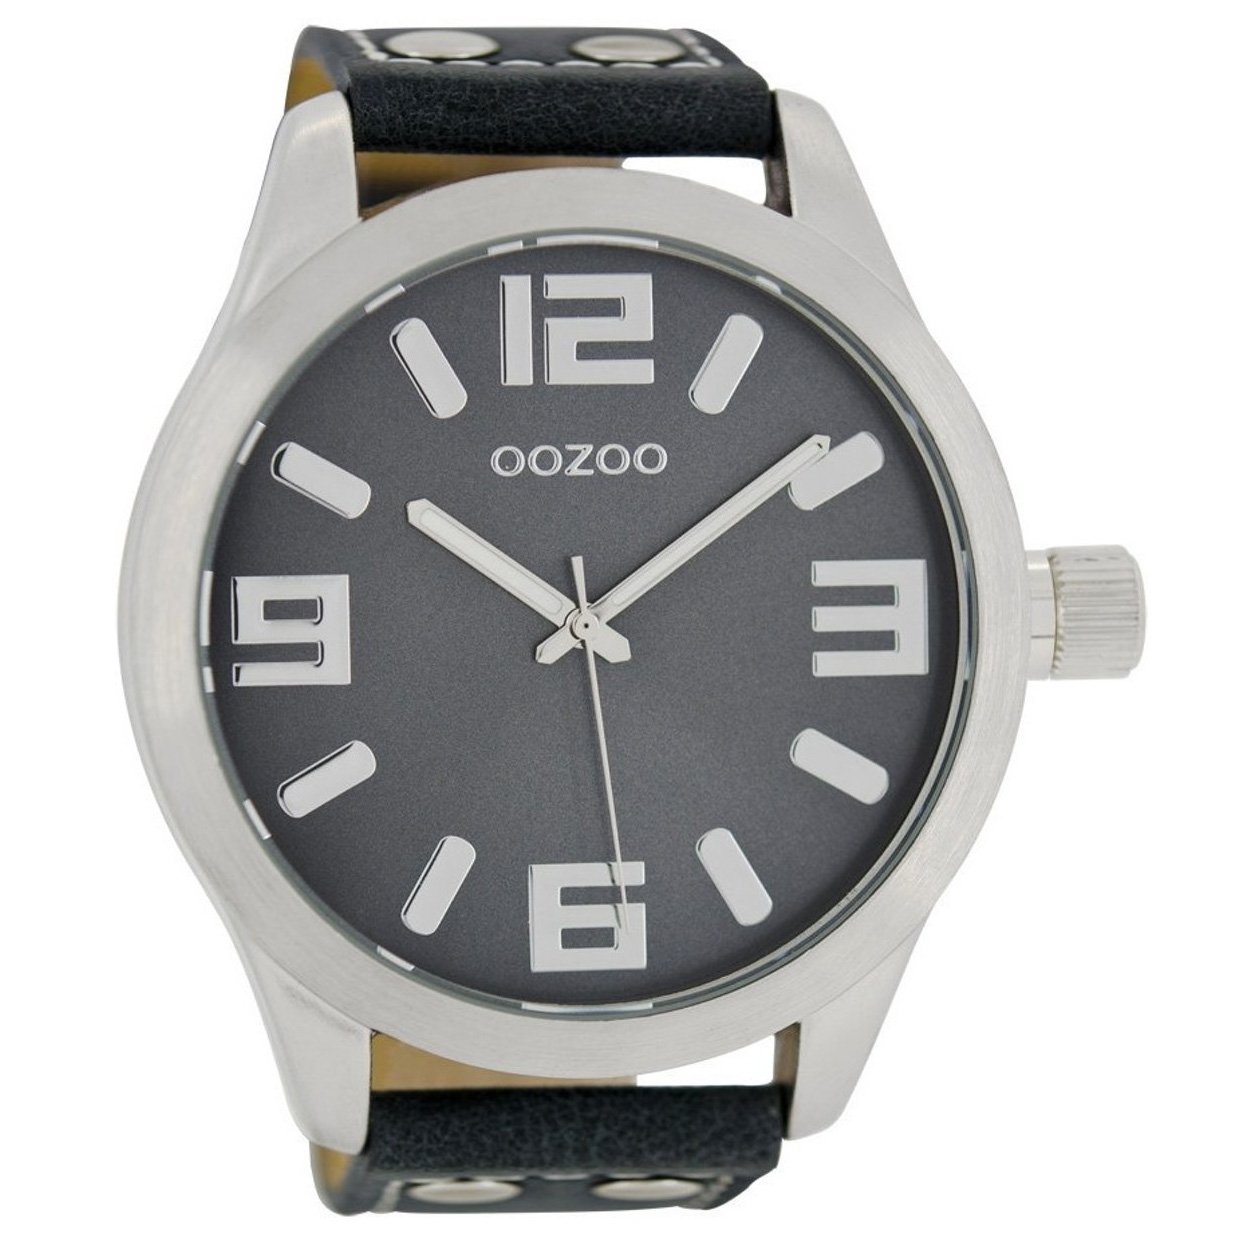 OOZOO C1012 Horloge Timepieces Collection donkerblauw 51 mm